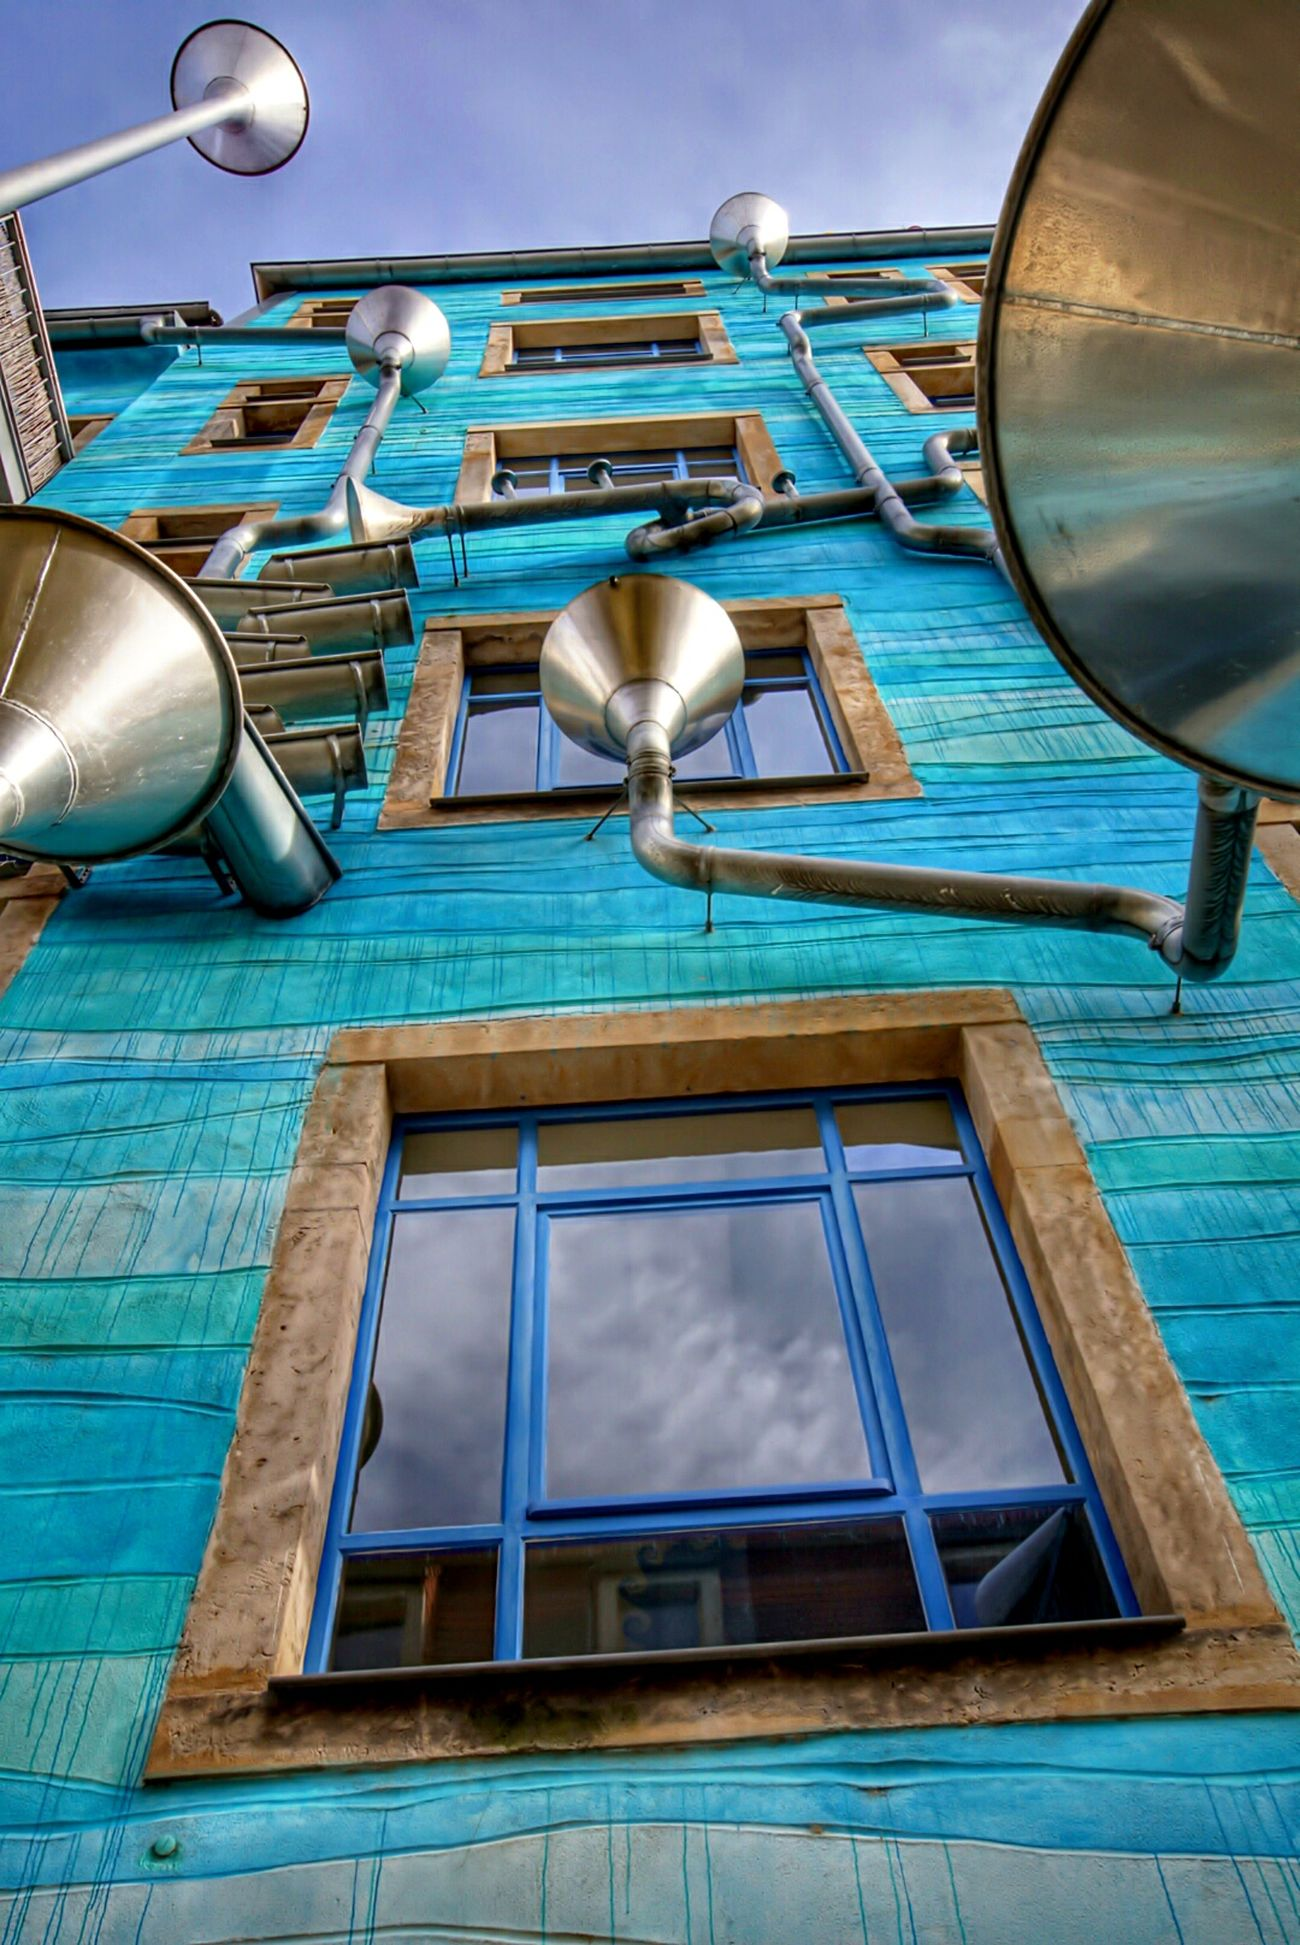 Dresden Dresden / Germany Dresden Neustadt Kunsthofpassage Blue No People Sky Architecture Outdoors Close-up Hdrphotography Hdr_Collection HDR Collection HDR Hdr_pics Architecture GERMANY🇩🇪DEUTSCHERLAND@ Colors Architecture_collection